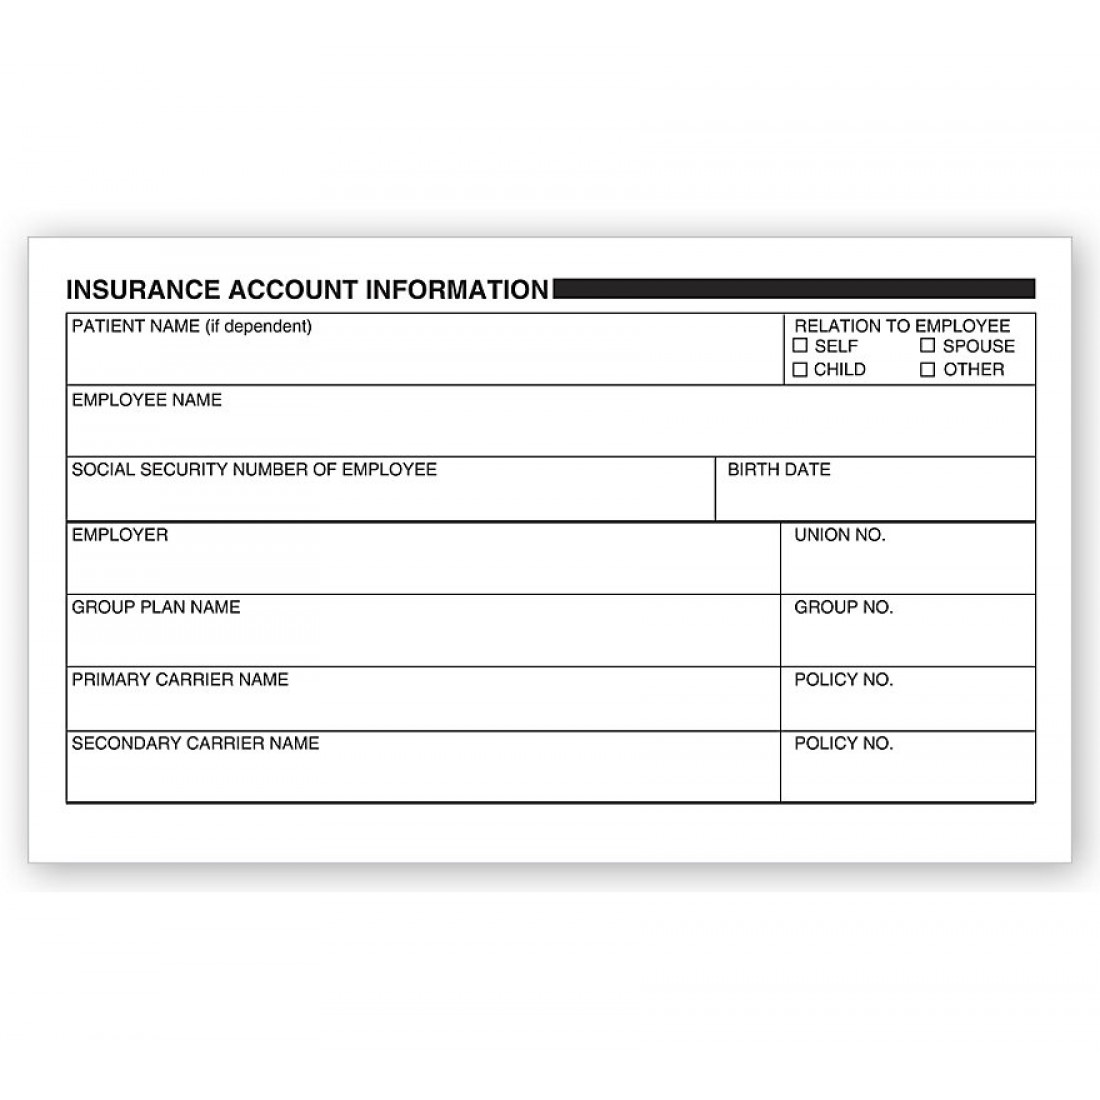 Patient Insurance Account Information Labels